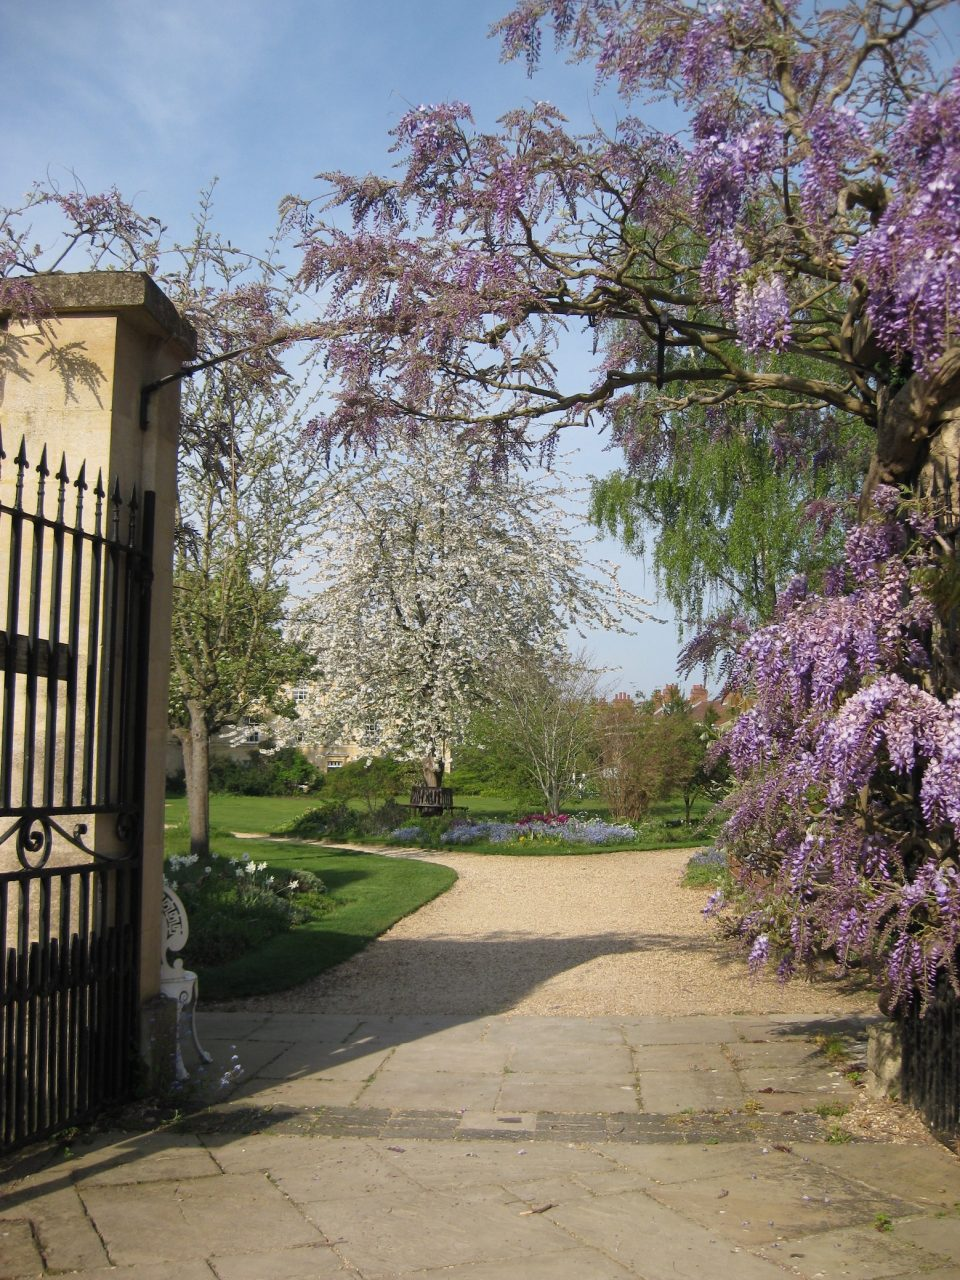 Wisteria as entering Observatory gardens